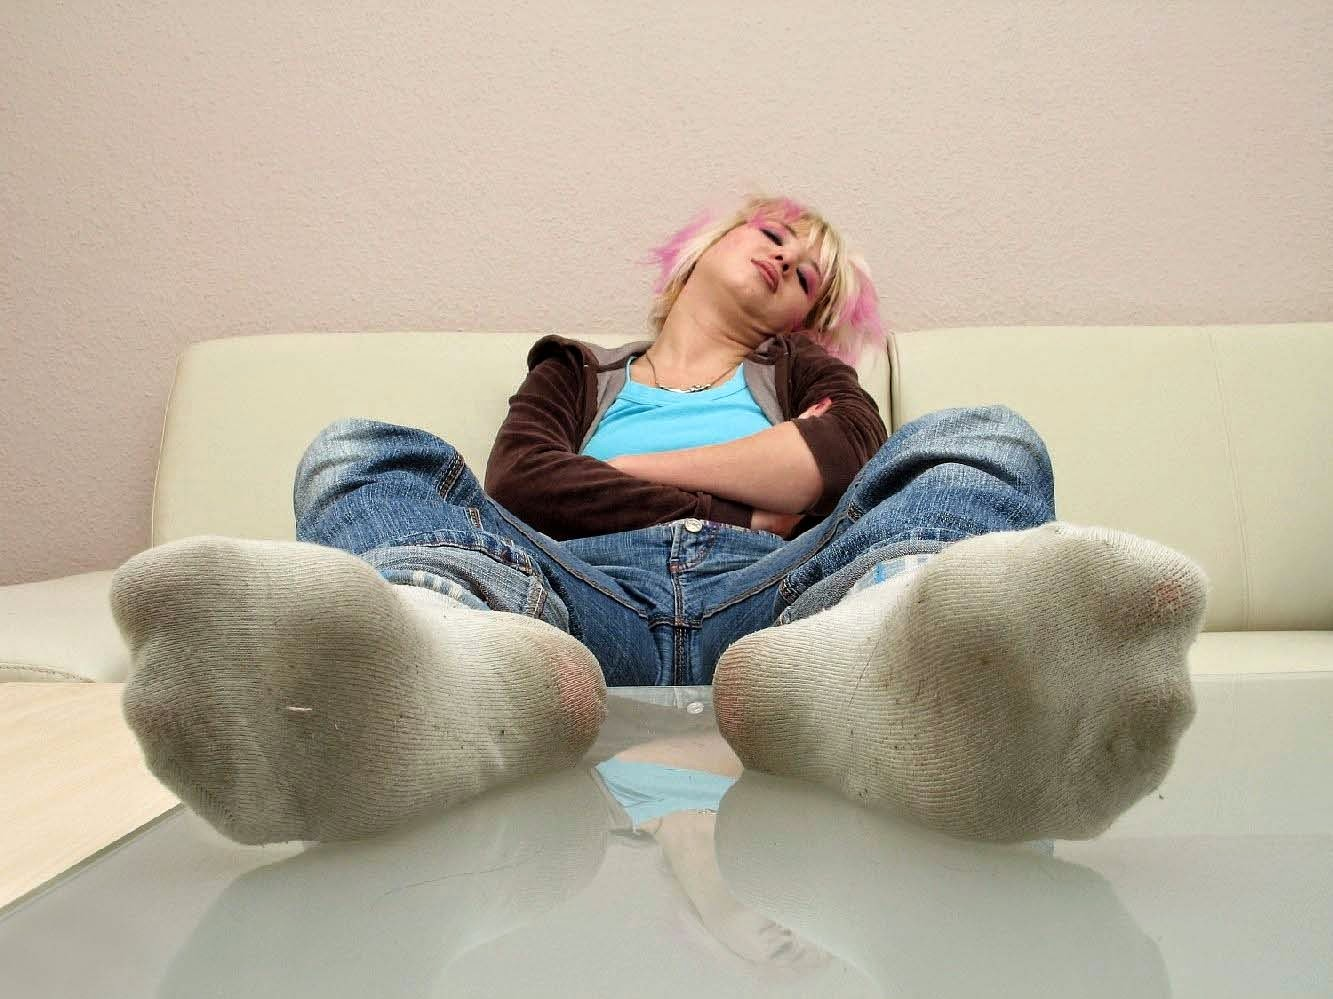 Her Dirty Teen Socks Sock 20